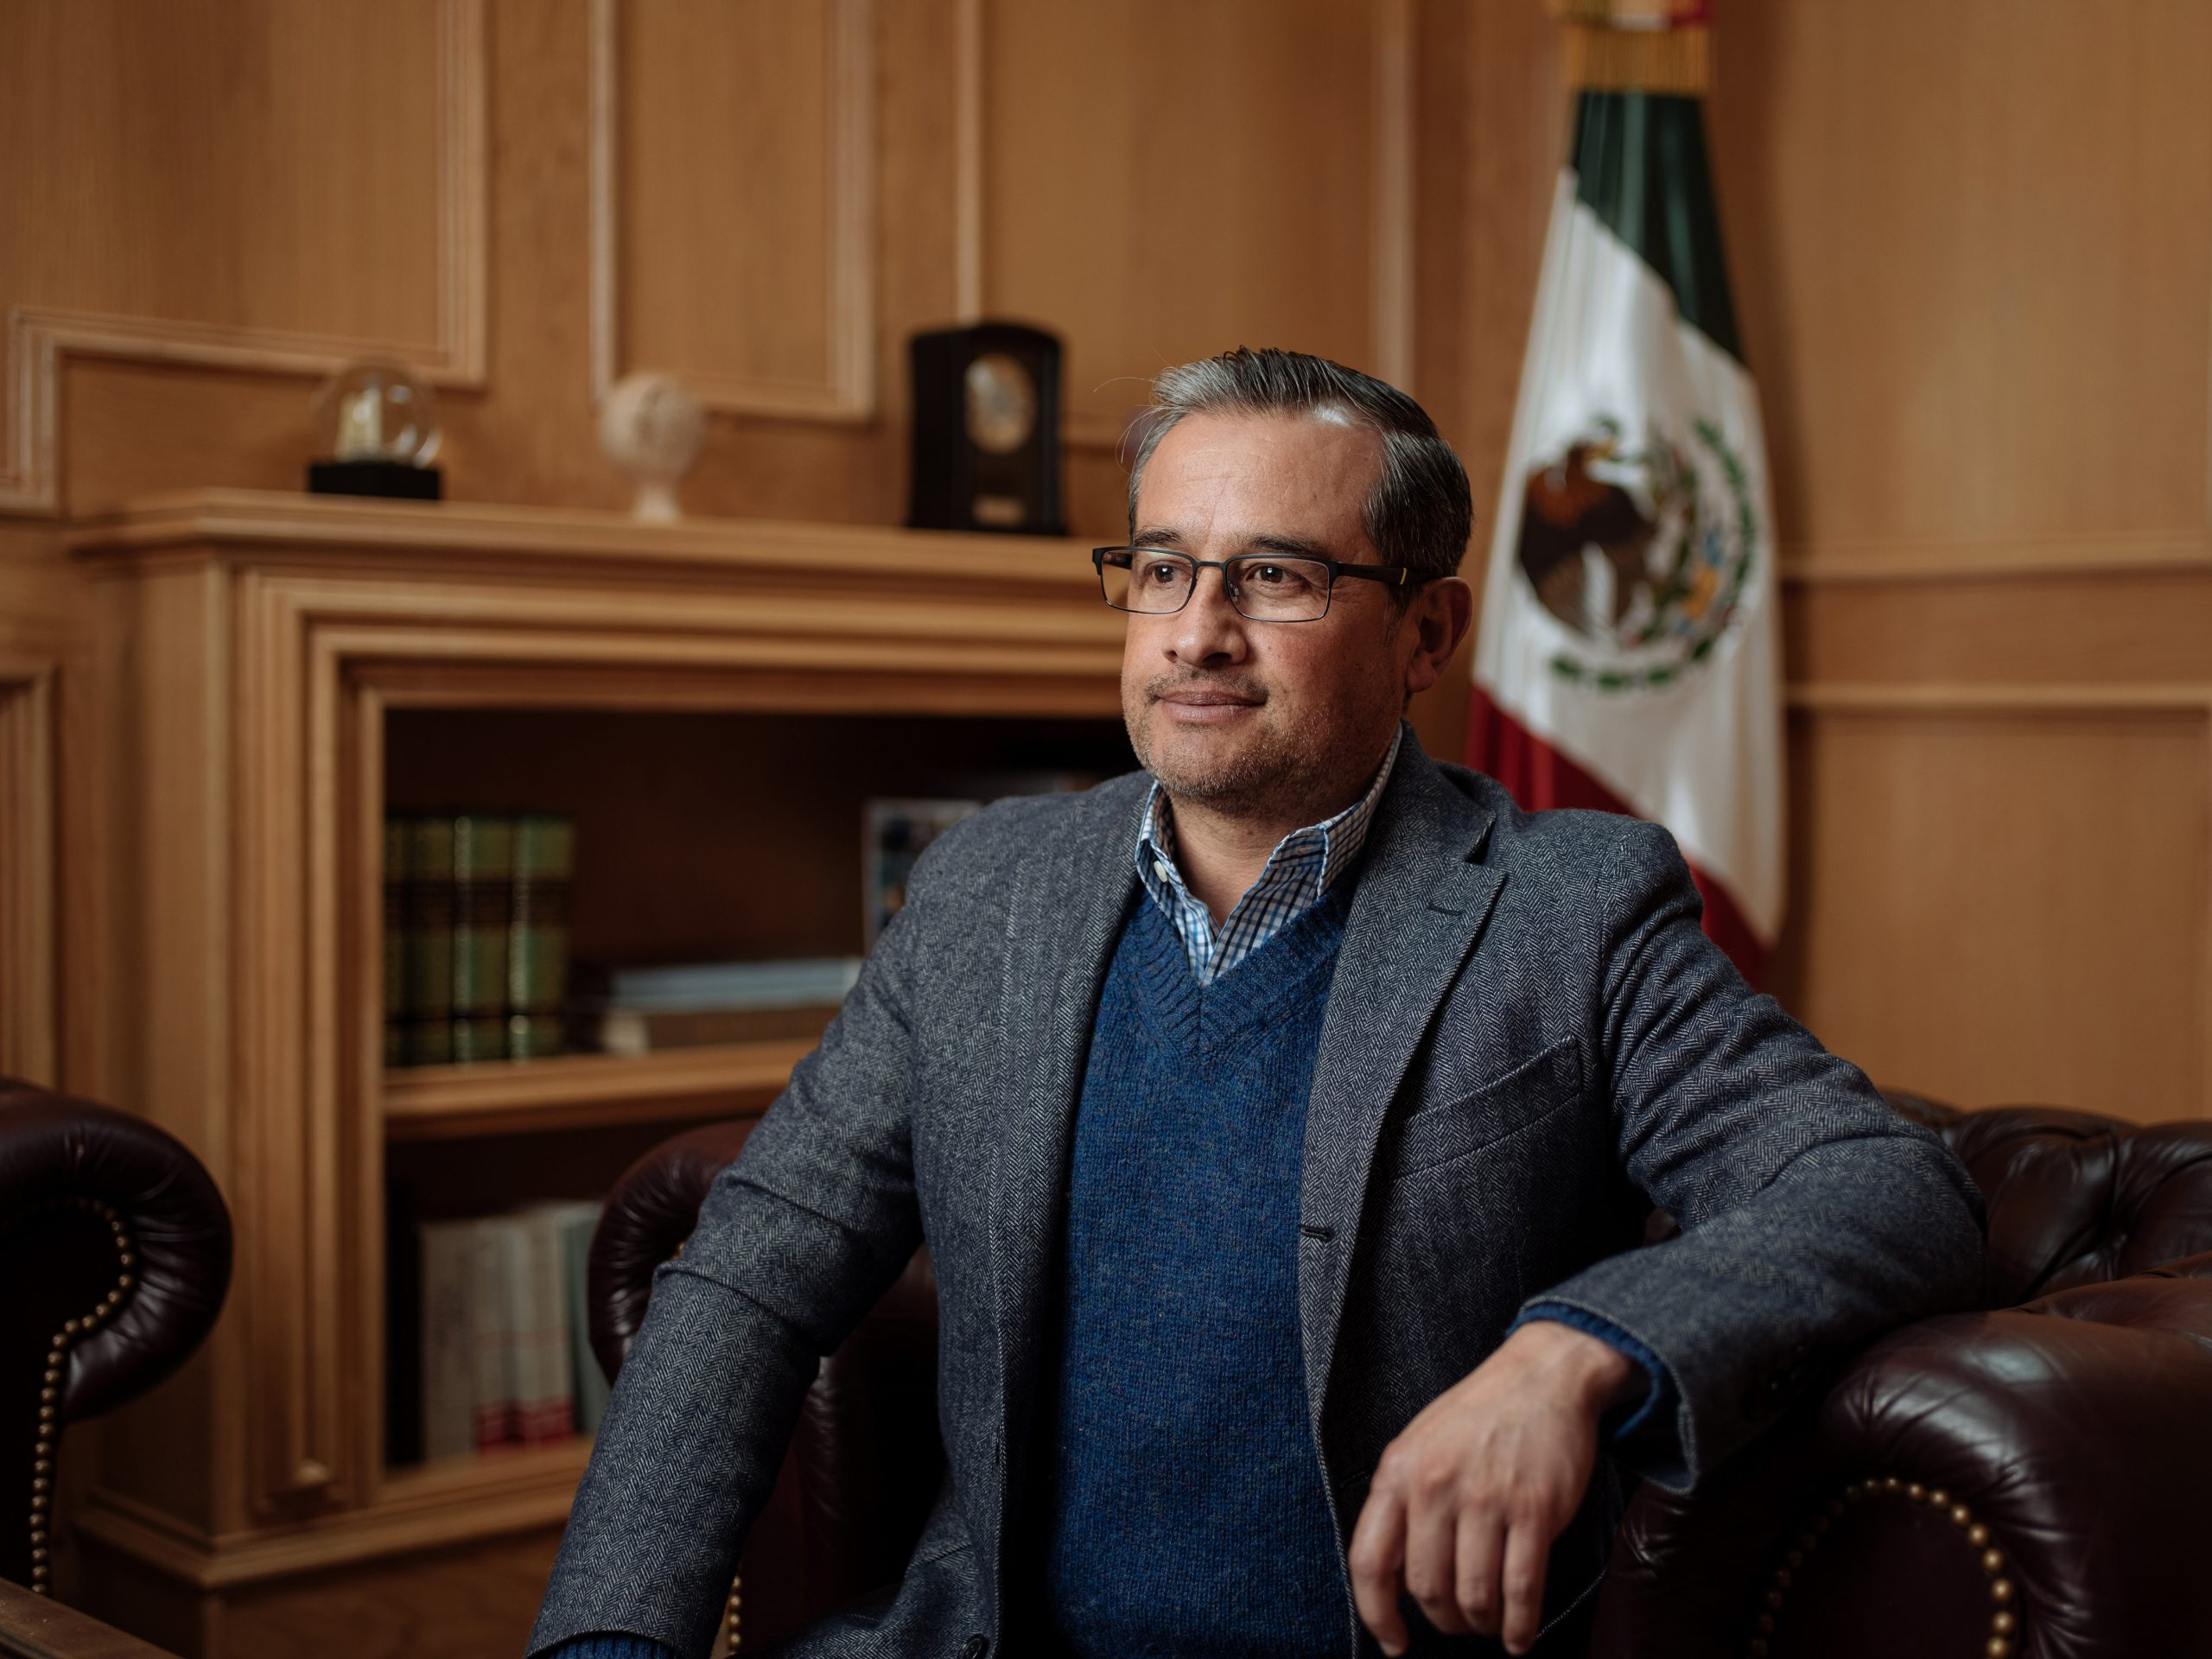 Consul General of Mexico in San Antonio Héctor Velasco Monroy sits for a portrait the Mexican Consulate in San Antonio on Friday, Jan. 27.